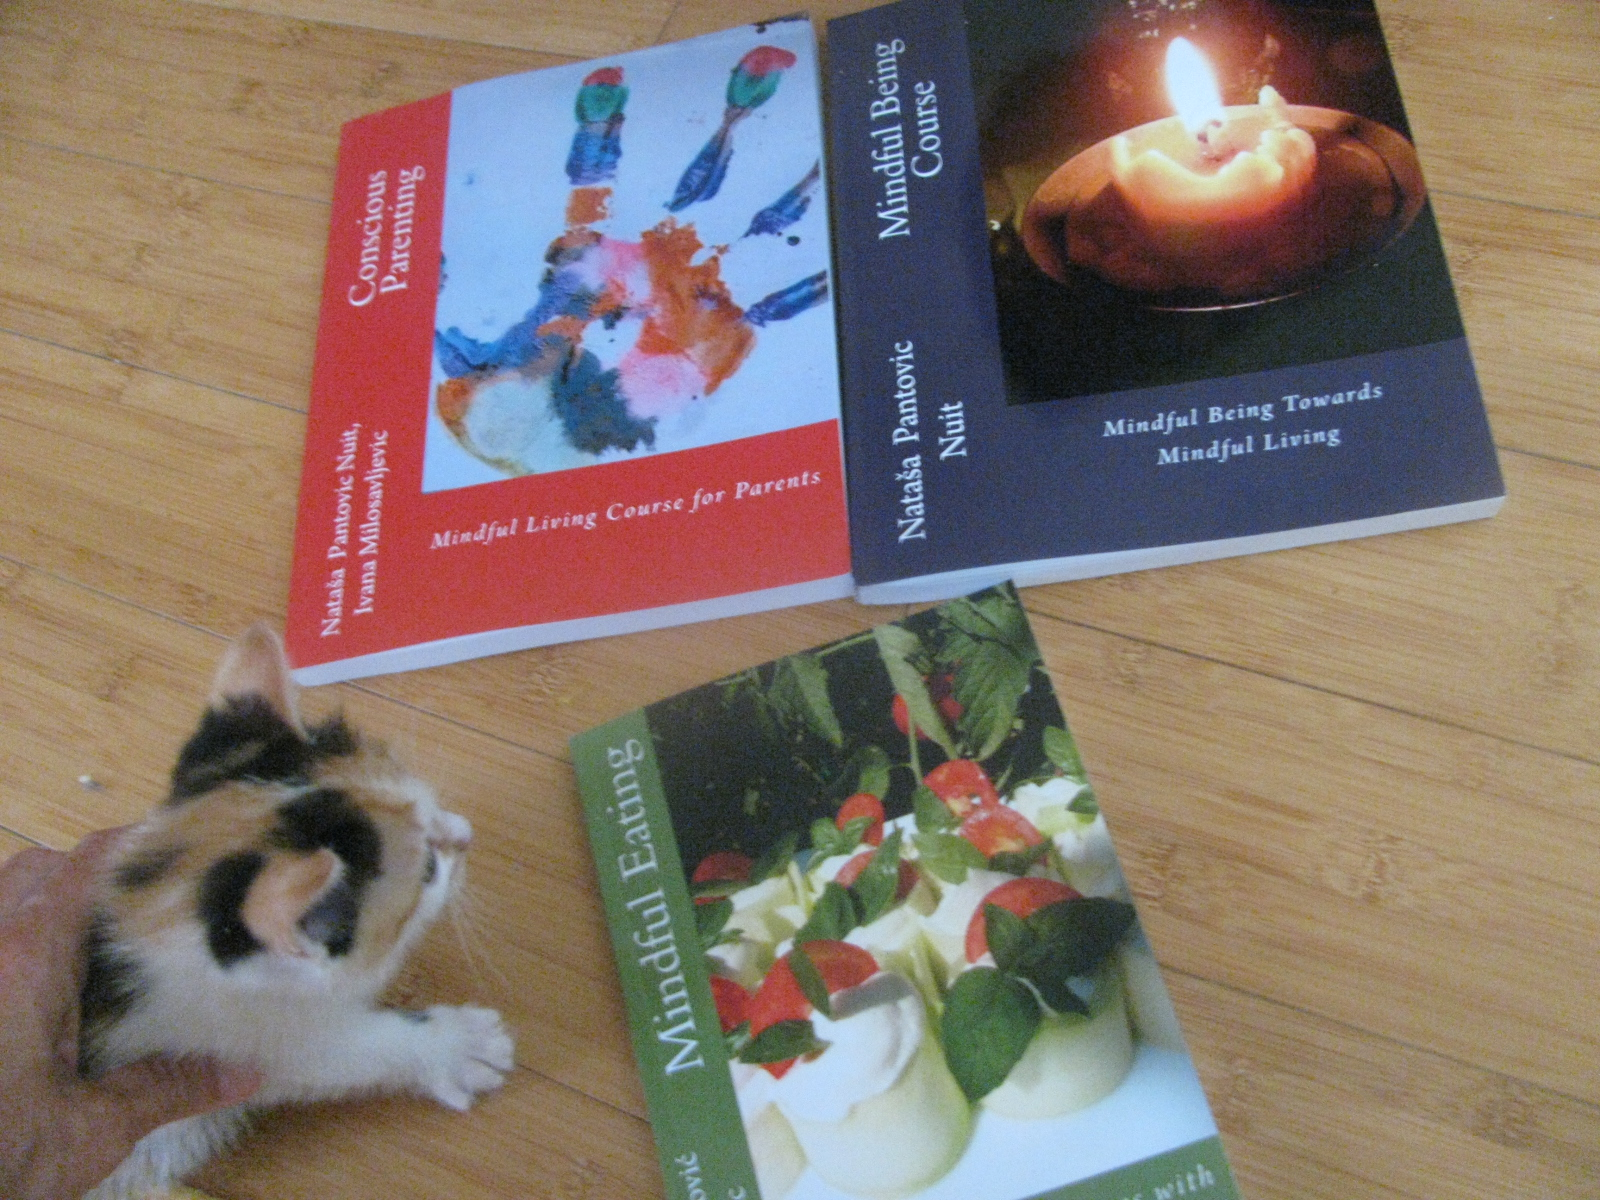 Conscious Parenting, Mindful Being and Conscious Eating printed